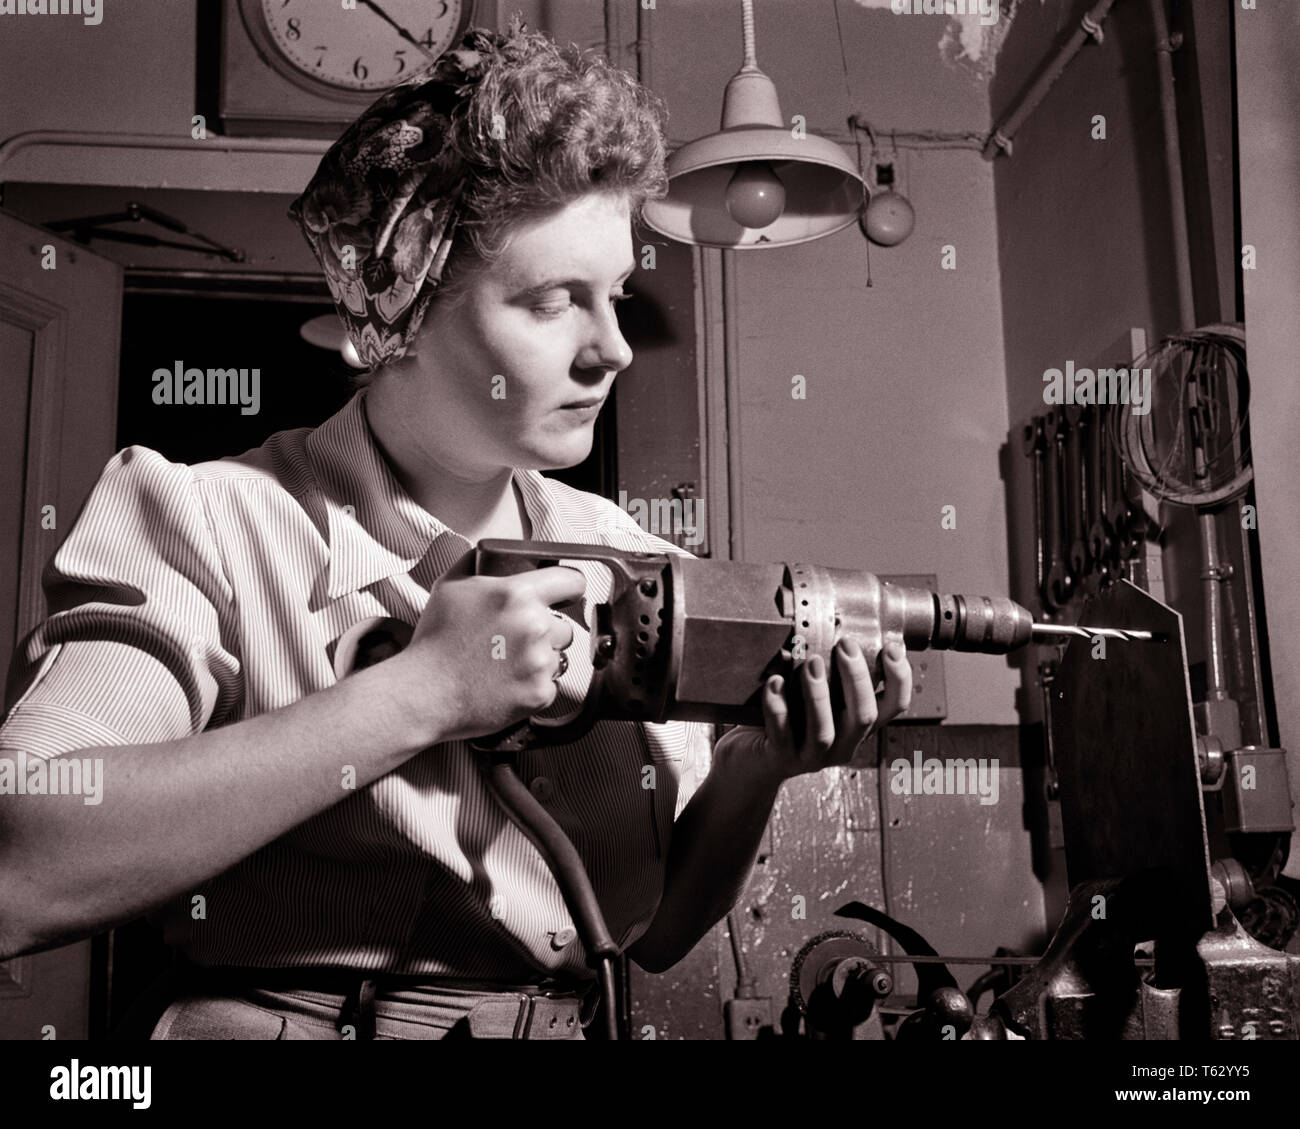 1940s PATRIOTIC ANONYMOUS UNIDENTIFIED WOMAN HOME FRONT INDUSTRIAL WORKER USING ELECTRICAL HAND DRILL DURING WORLD WAR II - q43367 CPC001 HARS FEMALES WW2 JOBS HALF-LENGTH LADIES PERSONS INSPIRATION CONFIDENCE B&W GOALS SUCCESS SKILL OCCUPATION SKILLS HOME FRONT STRENGTH VICTORY COURAGE CHOICE KNOWLEDGE LOW ANGLE POWERFUL WORLD WARS LABOR PRIDE WORLD WAR WORLD WAR TWO WORLD WAR II AUTHORITY EMPLOYMENT OCCUPATIONS UNIDENTIFIED USING CONCEPTUAL PATRIOTIC ROSIE THE RIVETER STYLISH WORLD WAR 2 ANONYMOUS EMPLOYEE PRECISION YOUNG ADULT WOMAN BLACK AND WHITE CAUCASIAN ETHNICITY DURING LABORING - Stock Image